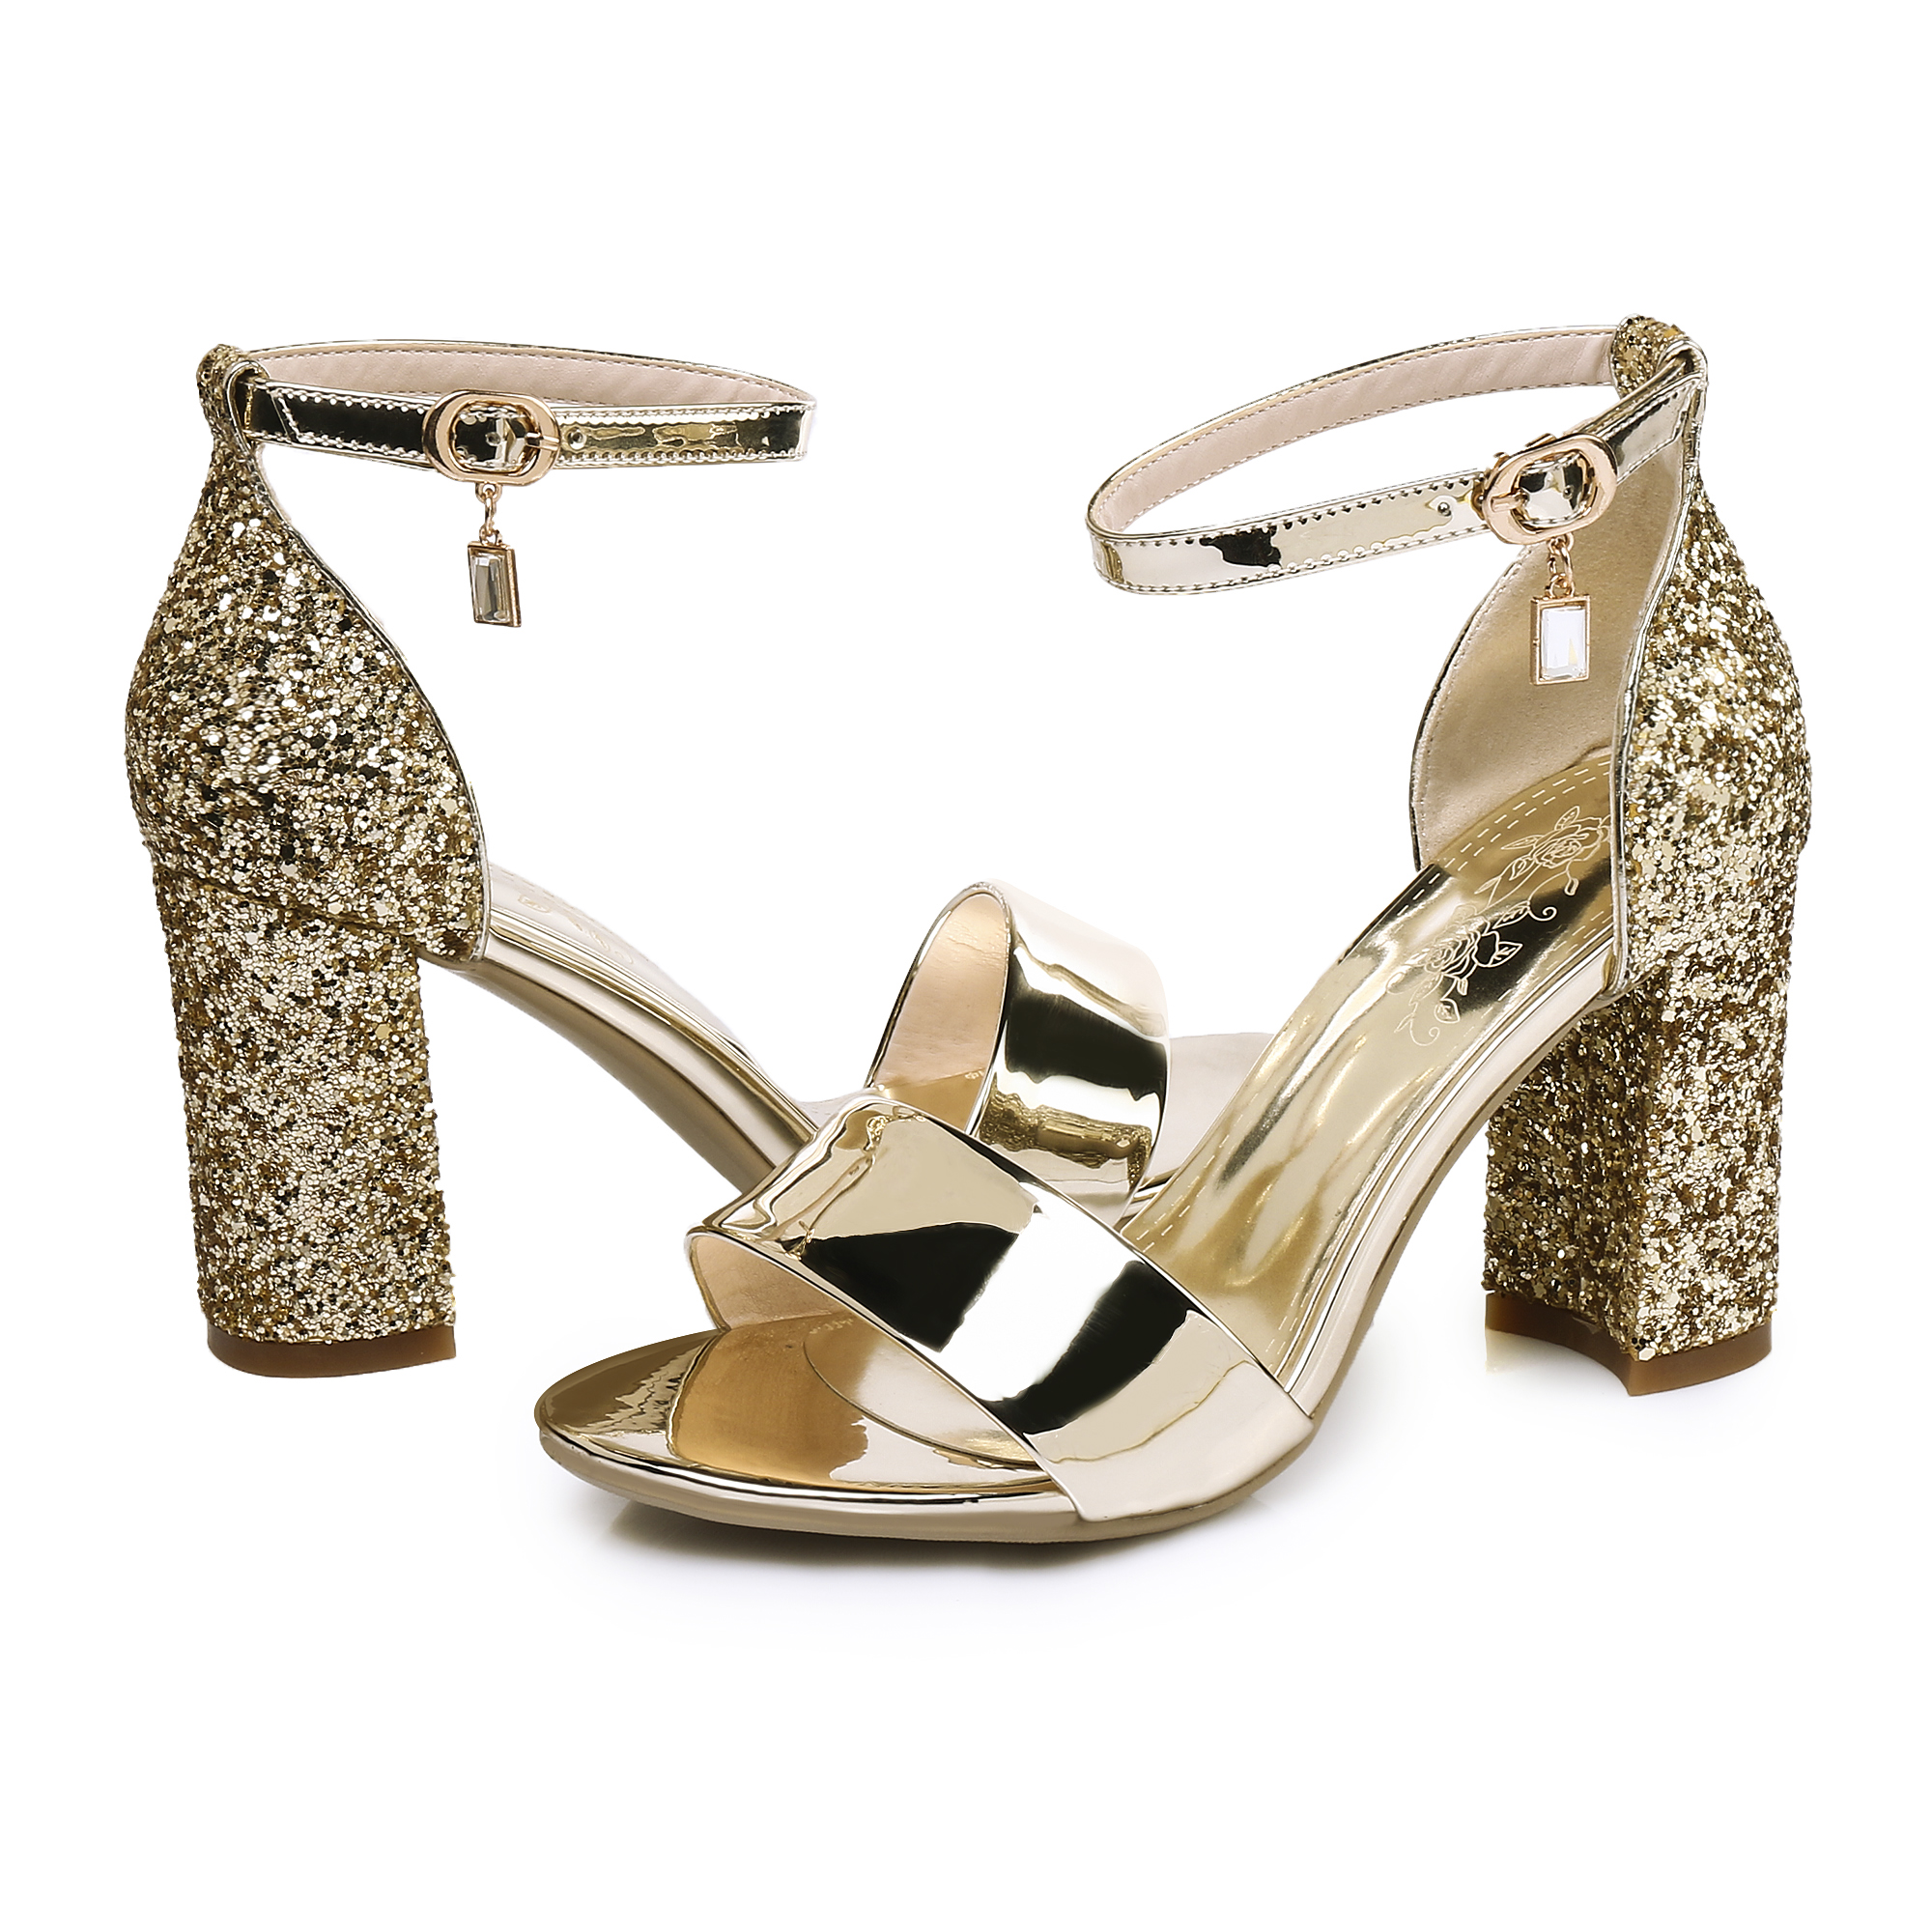 6f559b28b814dd US  60 - Arden Furtado 2018 summer high heels 8cm ankle strap gold silver  small size 32 33 bling bling sequined cloth sandals party shoes ...